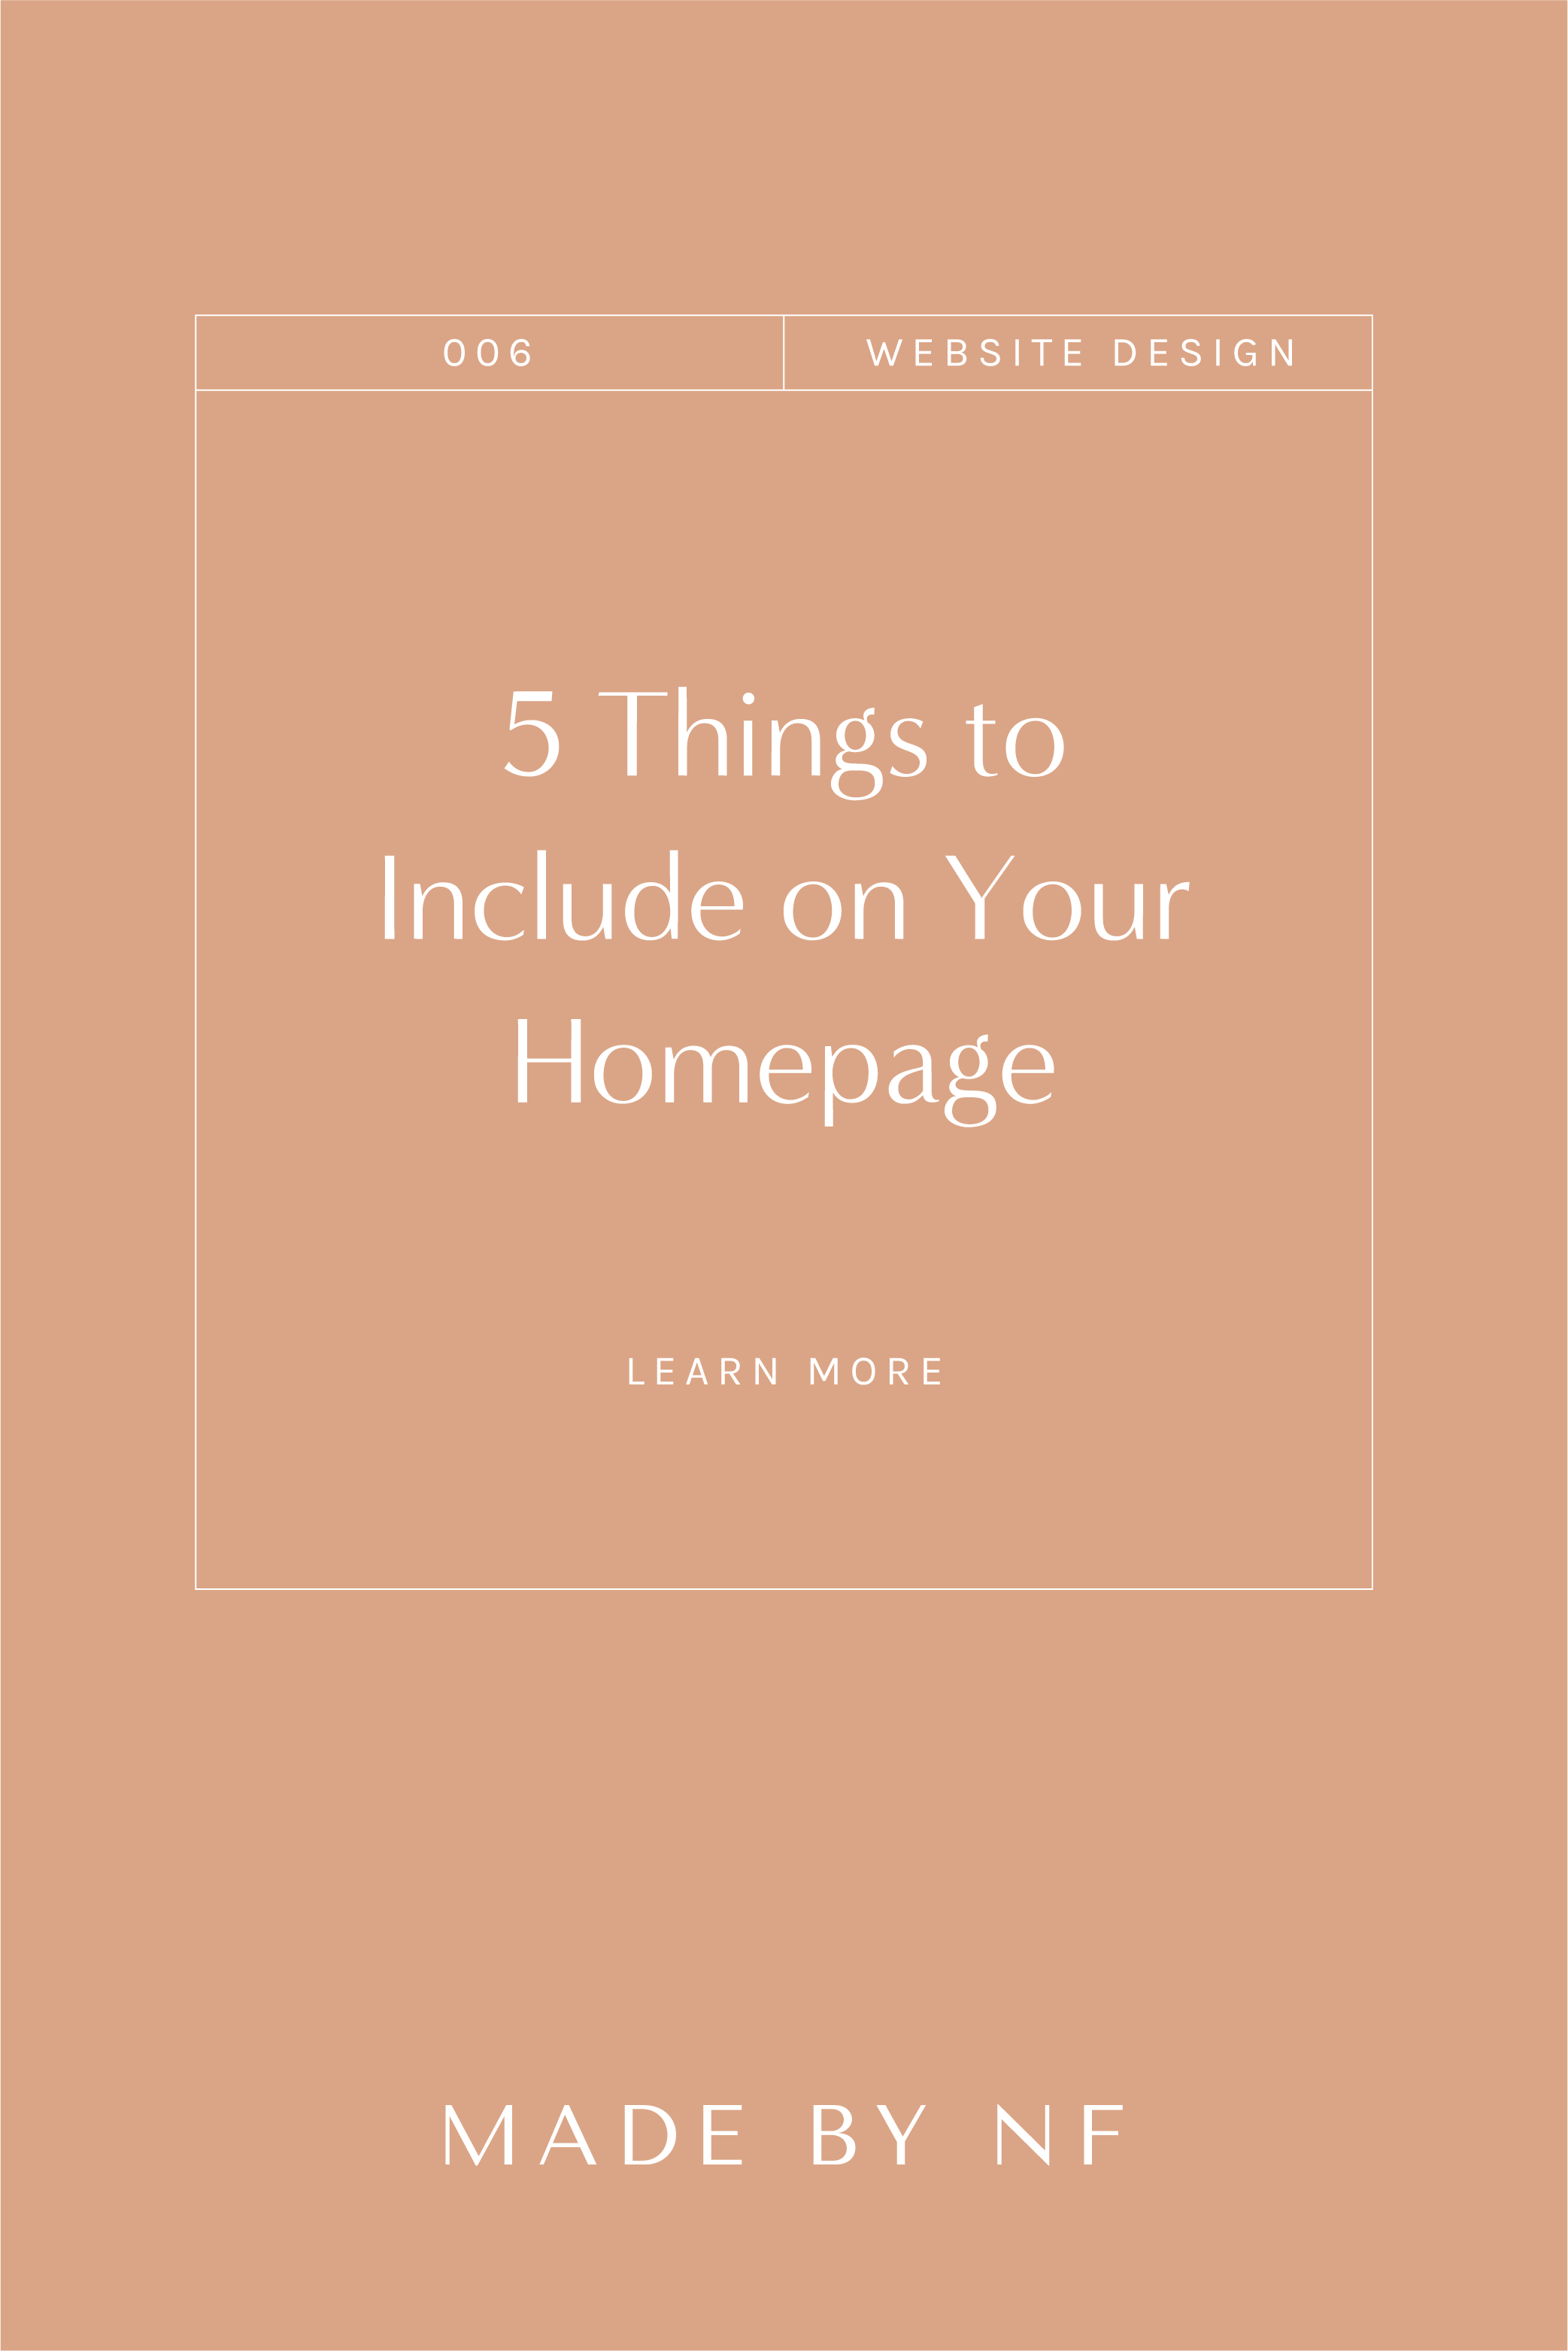 5 things to include on your homepage - squarespace website design for service based businesses